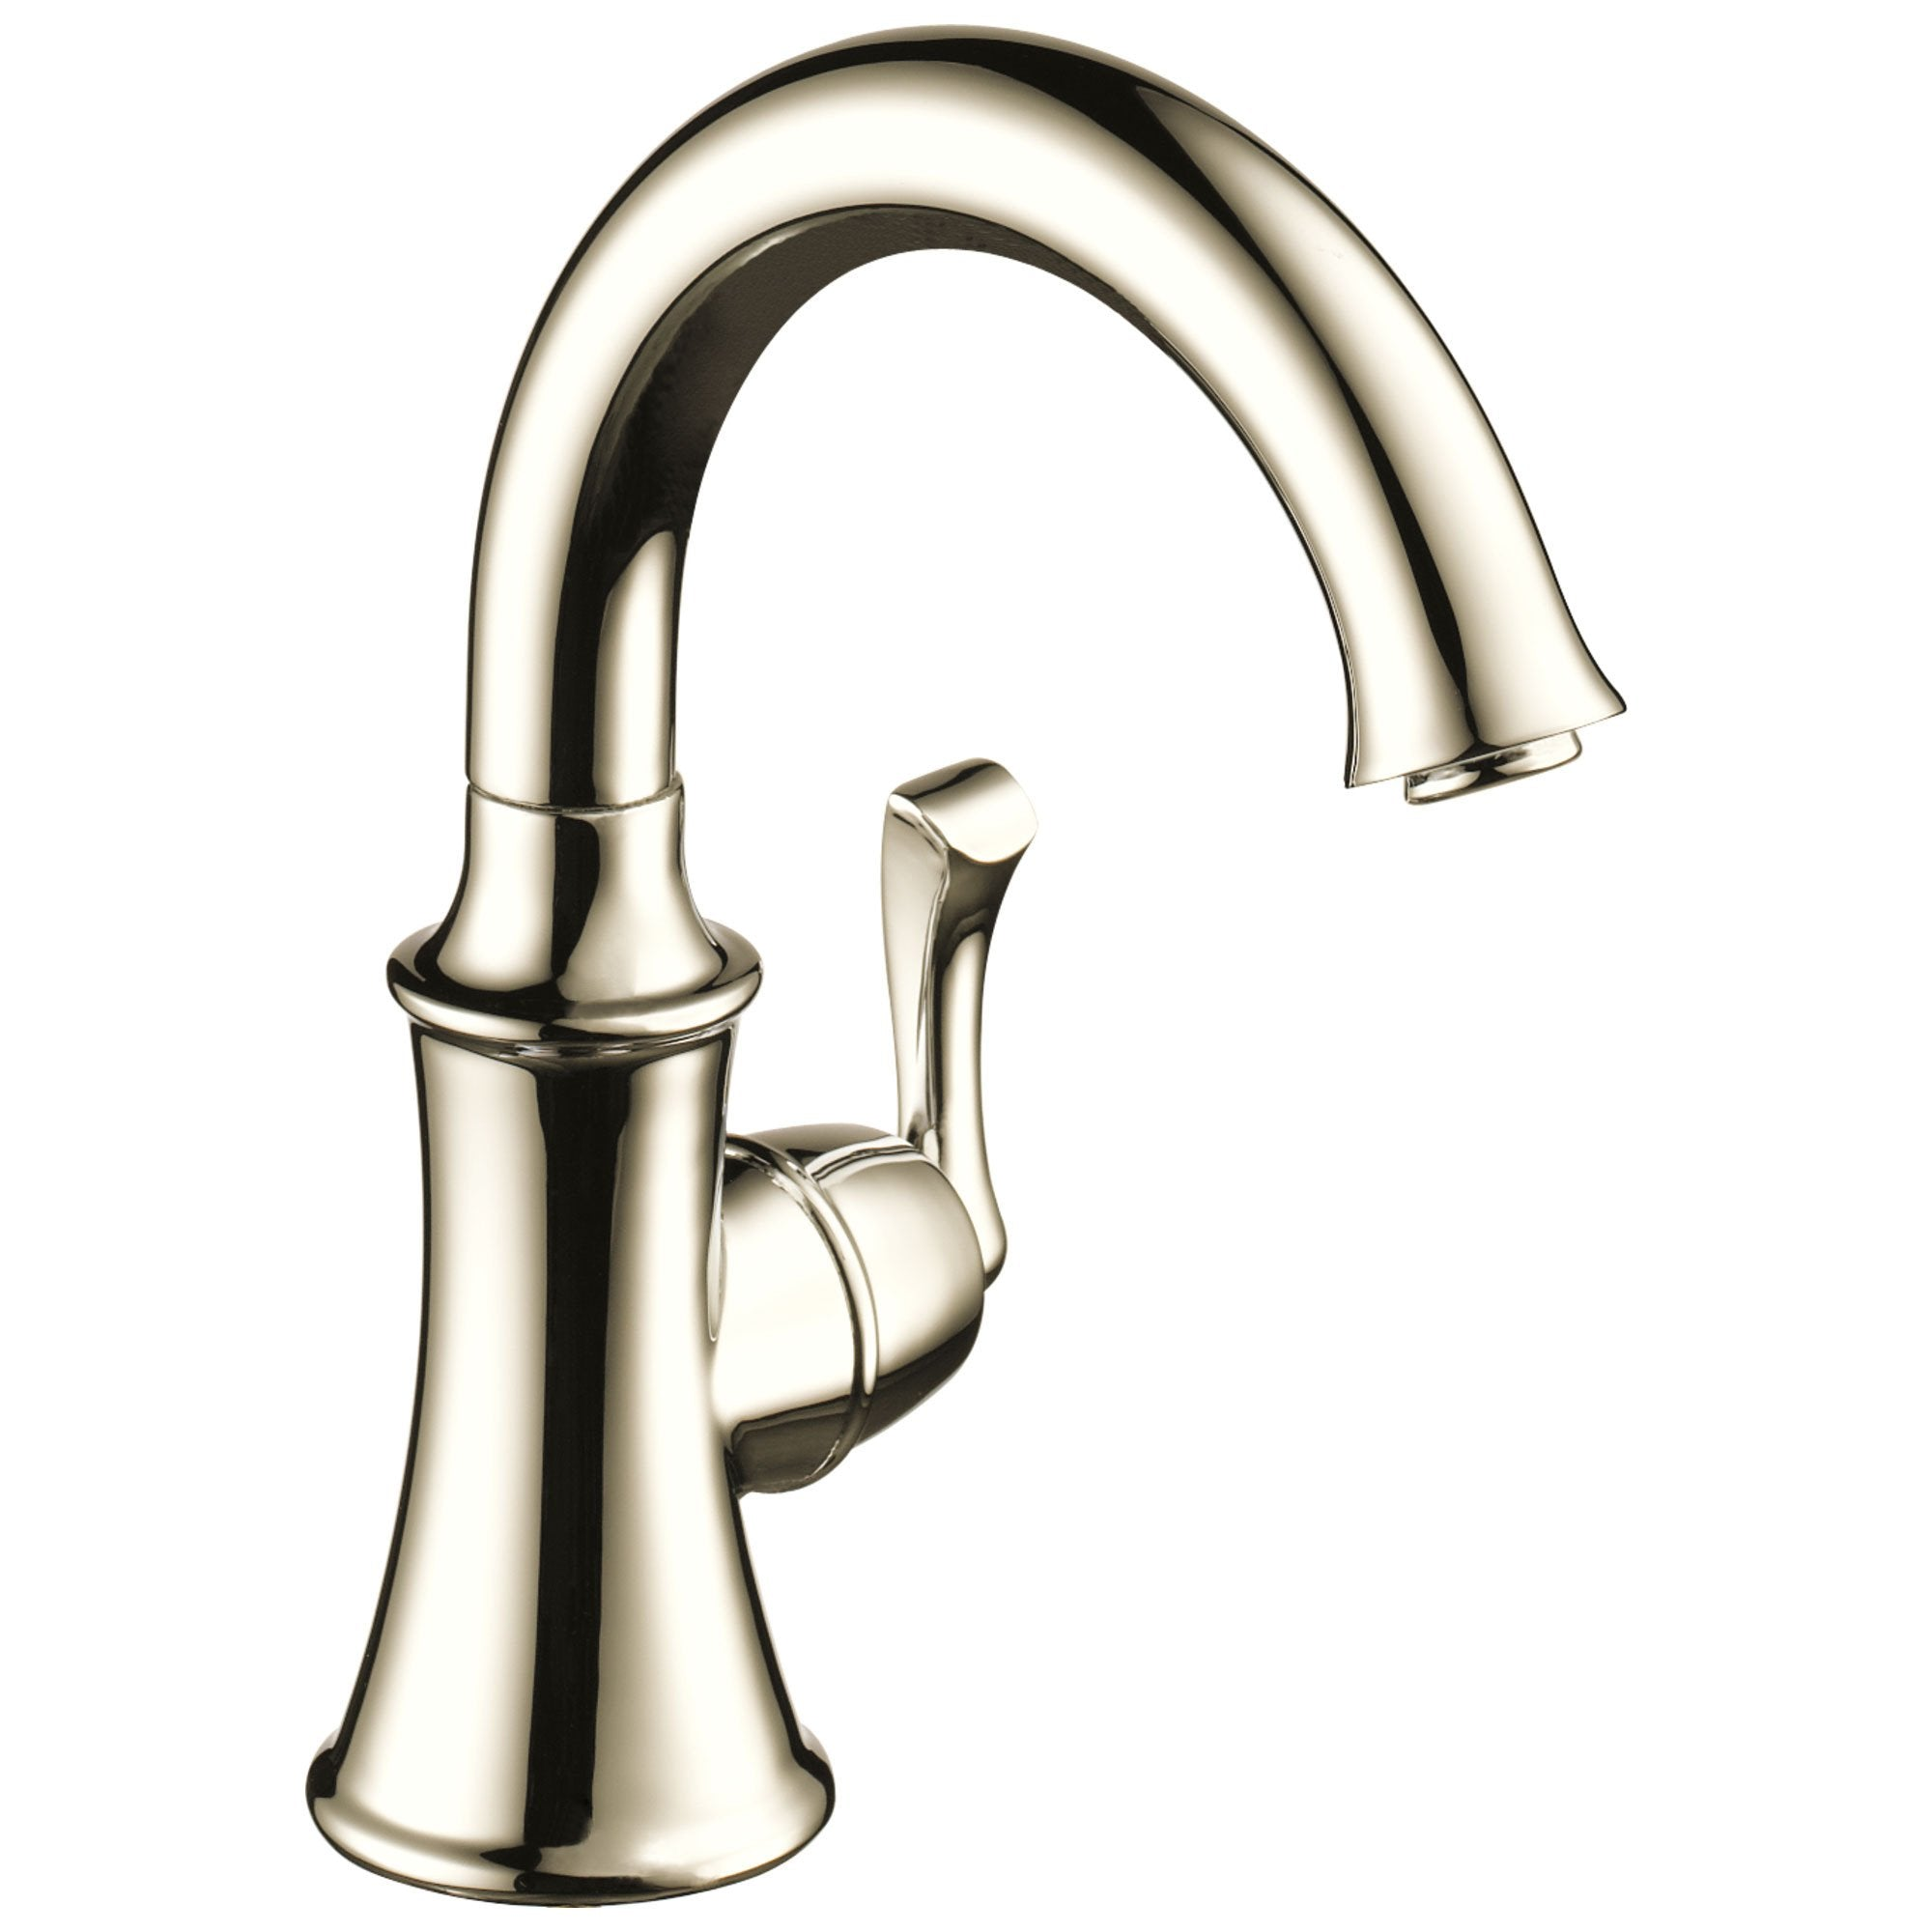 Delta Polished Nickel Finish Traditional Water Dispenser Beverage Faucet 751598